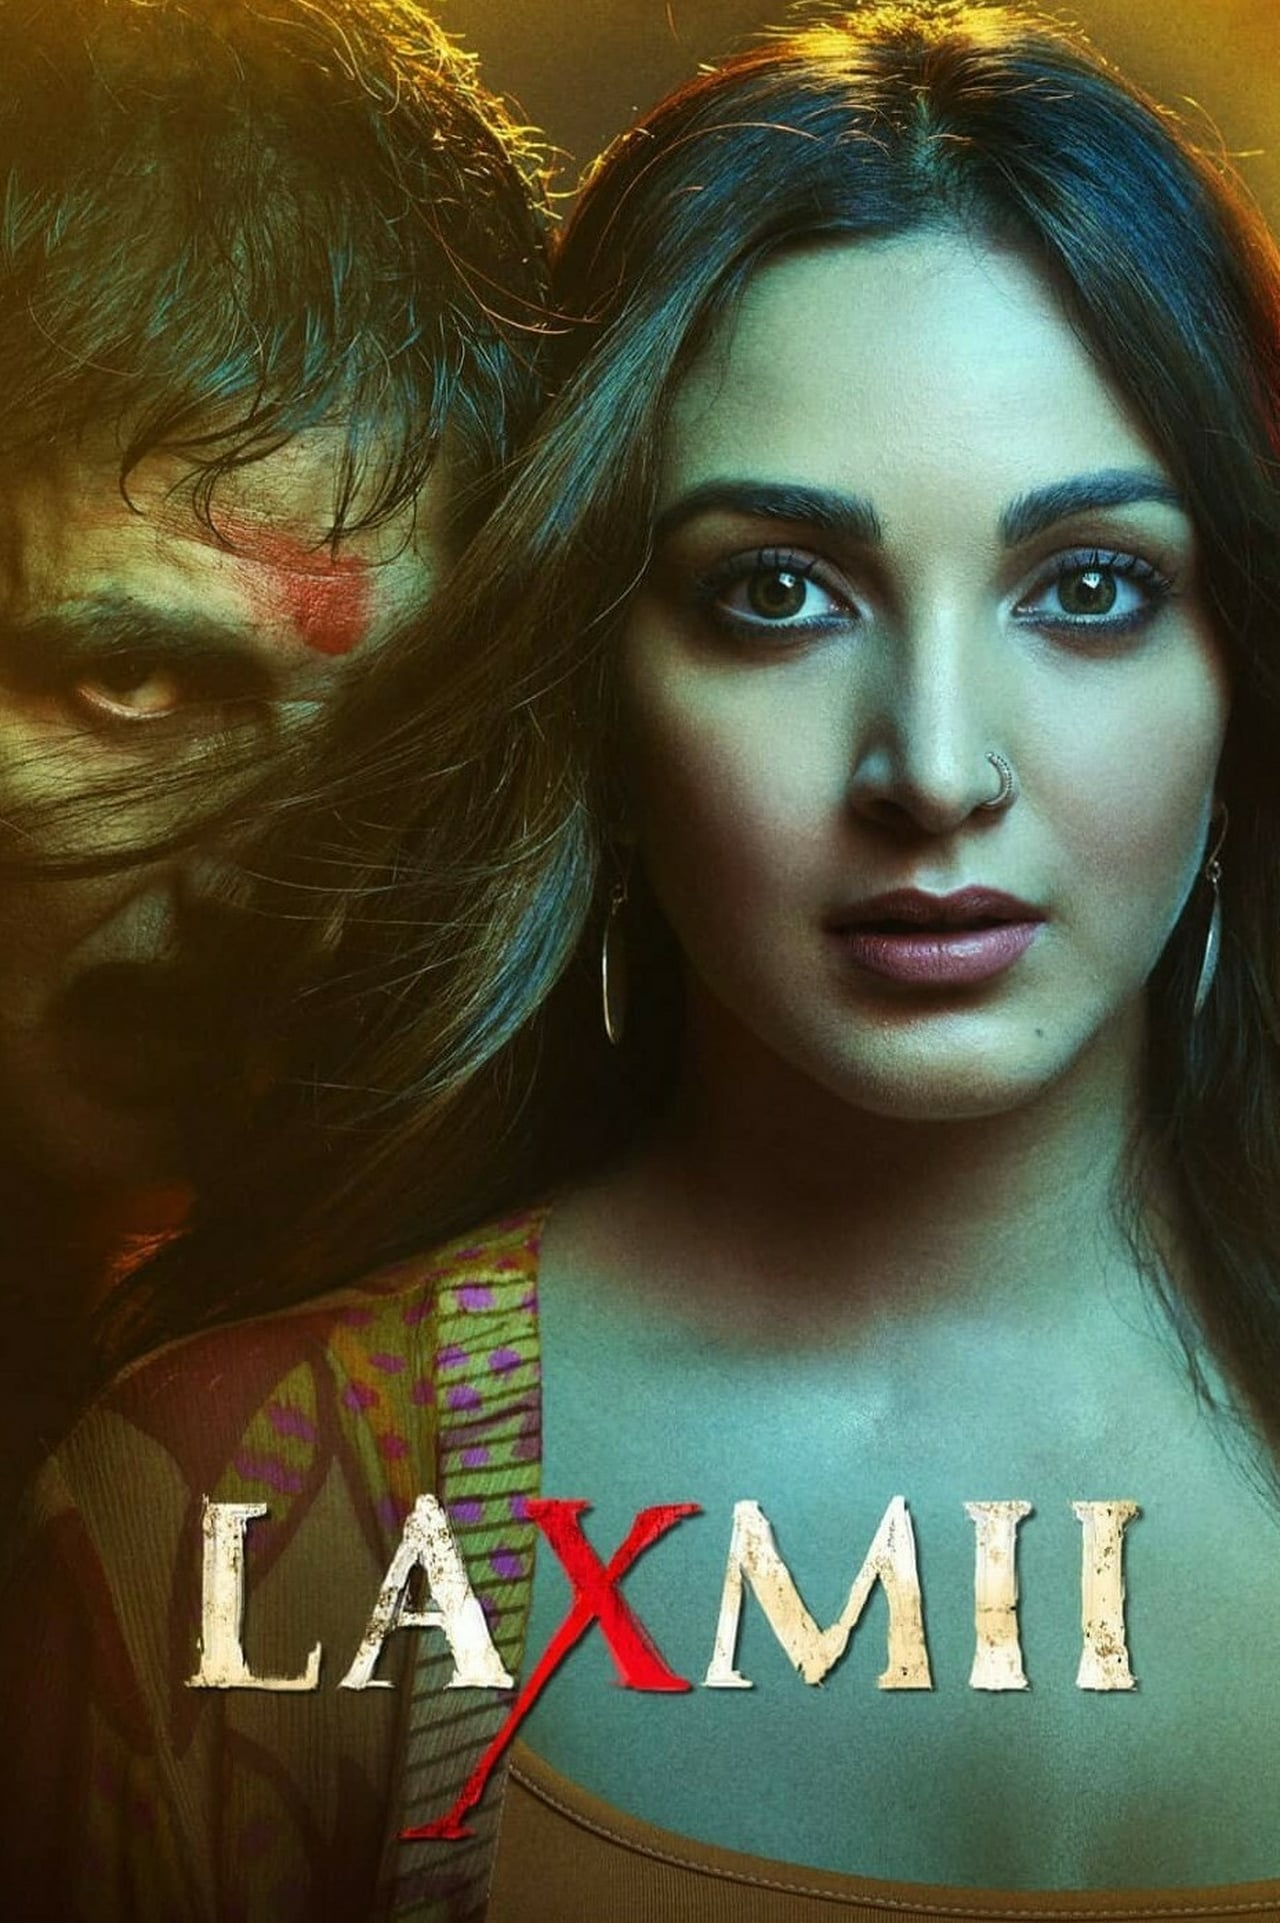 Download Laxmii (2020) {Hindi With Eng Sub} Blu-Ray 480p [500MB] || 720p [1.4GB] || 1080p [3.5GB]